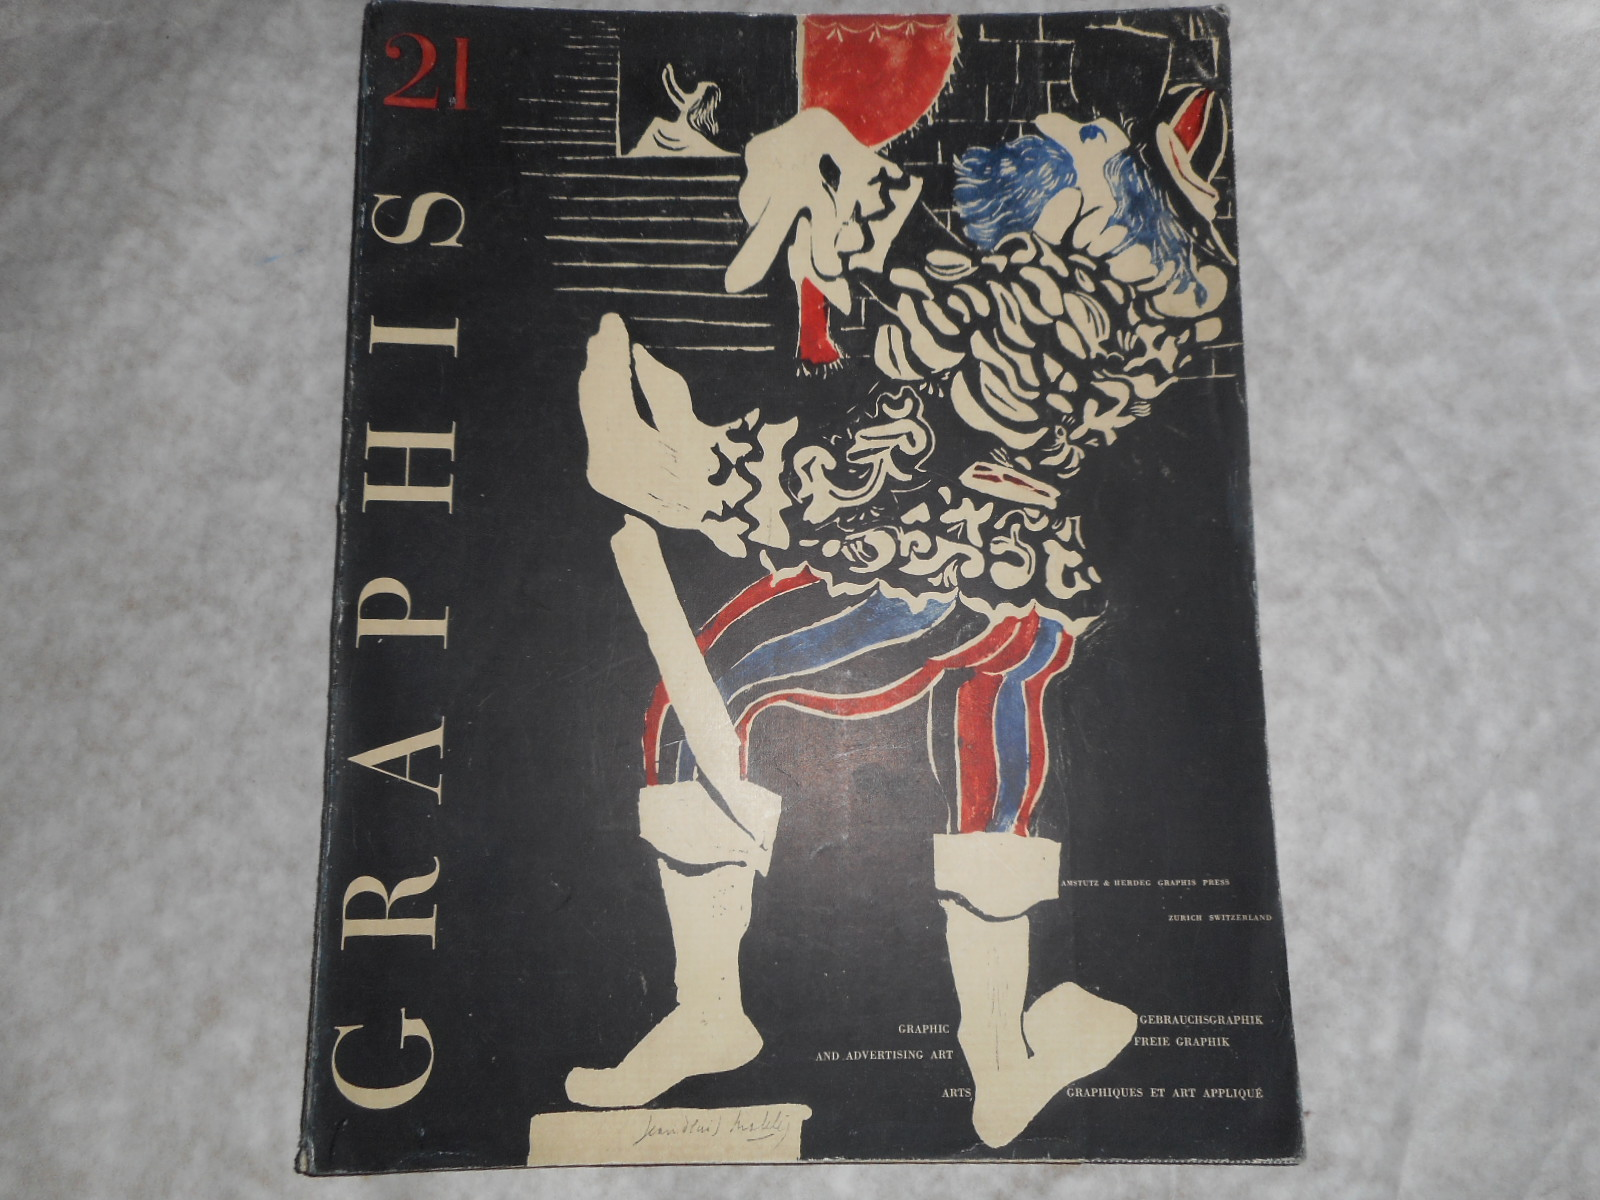 Image for GRAPHIS MAGAZINE International Journal of Graphic Art and Applied Art. No 21 1948 (Vol 4) . Cover Art by Jean-Denis Malcles In 3 Languages - French English and German